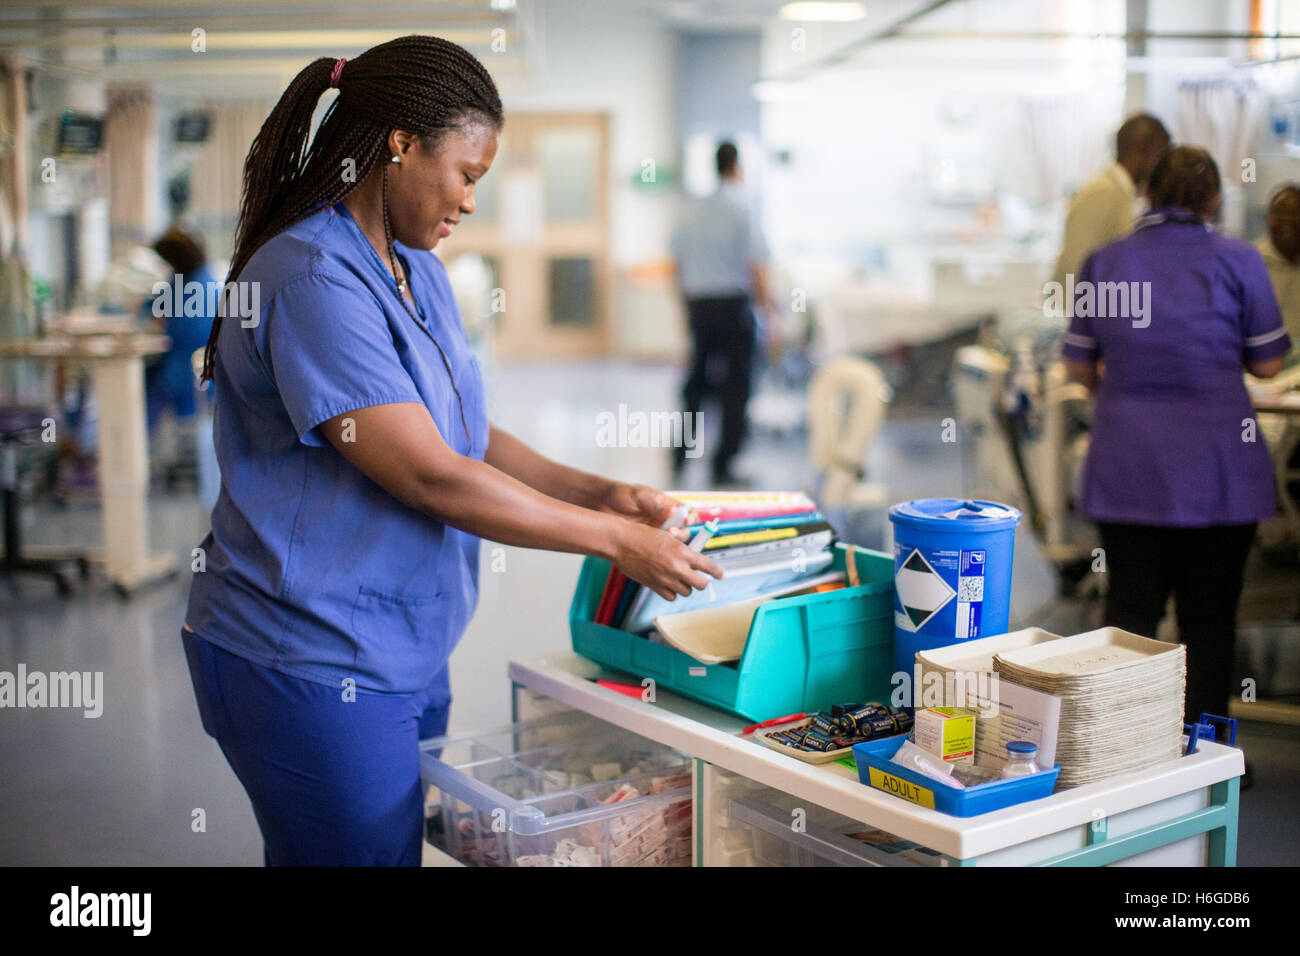 A hospital nurse checking patient notes on the ward trolley - Stock Image